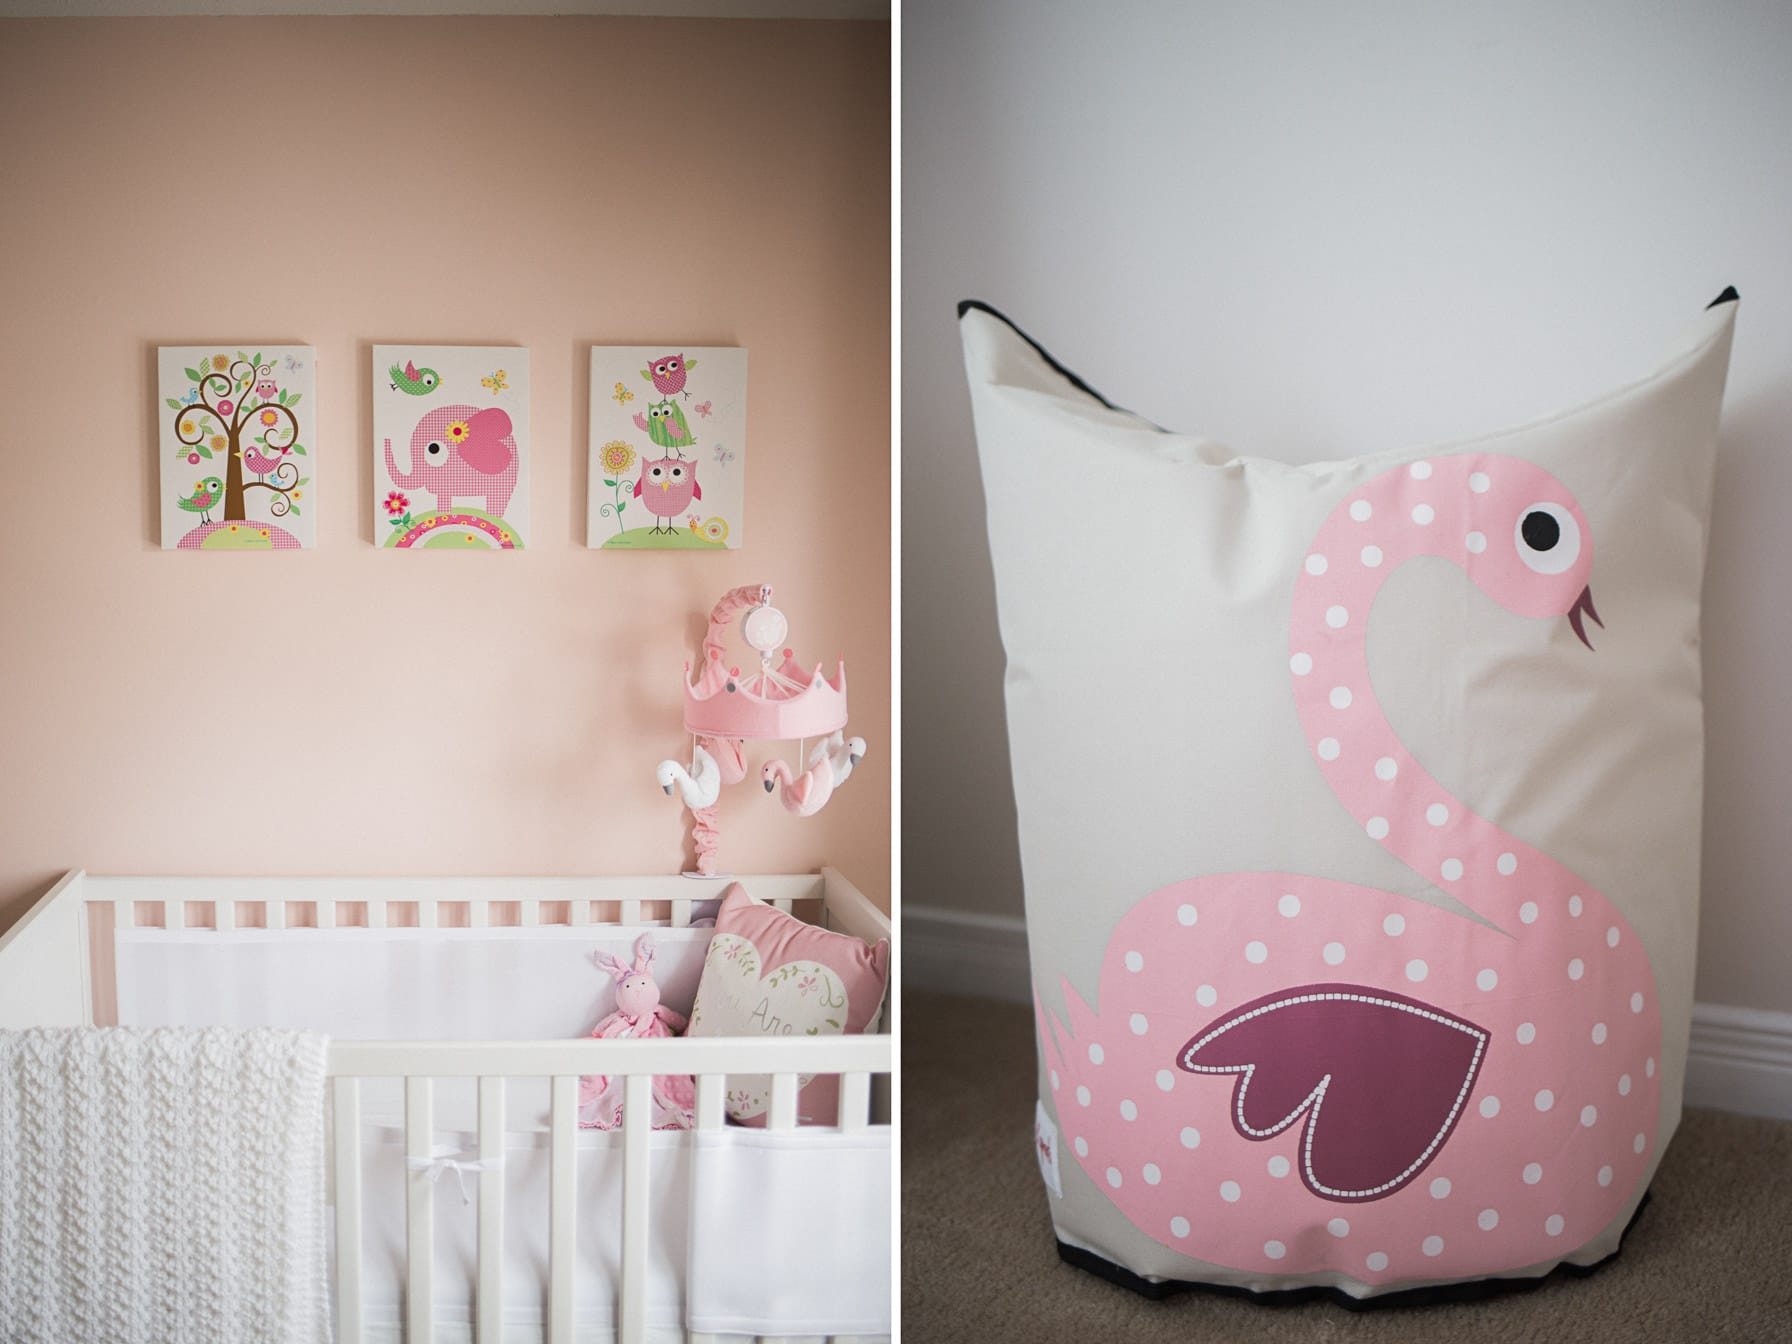 at home maternity ottawa - baby nursery details